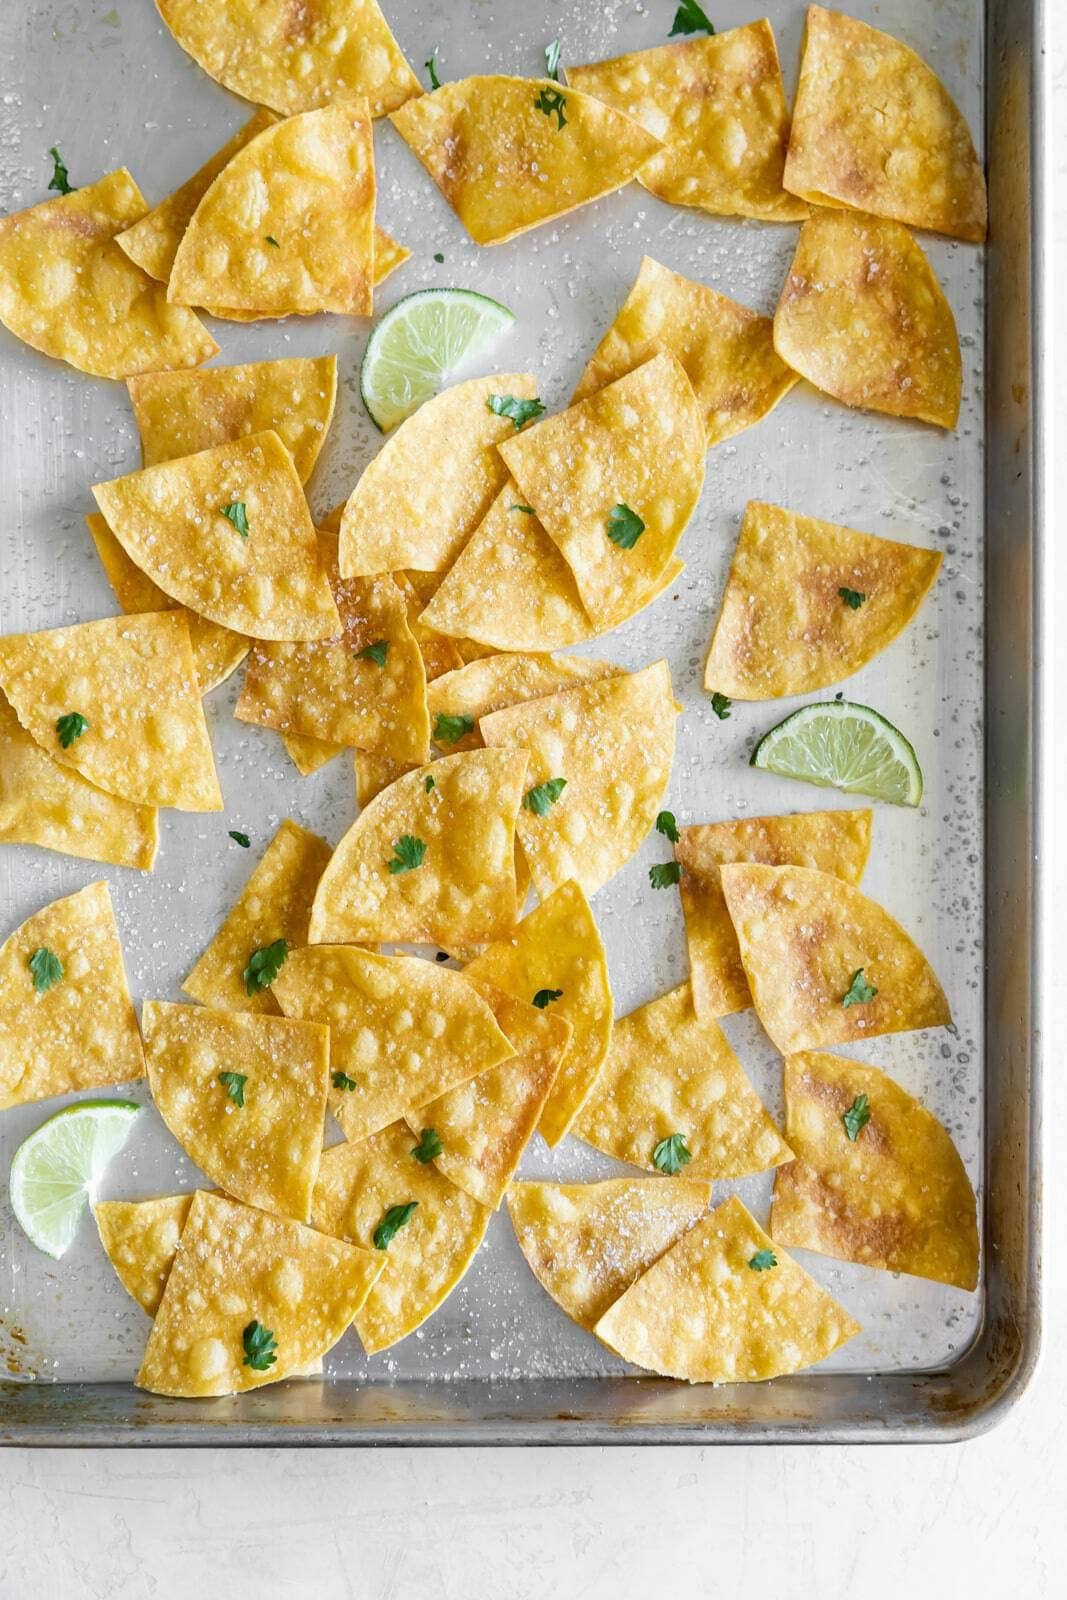 3 Ingredient Baked Sea Salt Tortilla Chips A Sassy Spoon